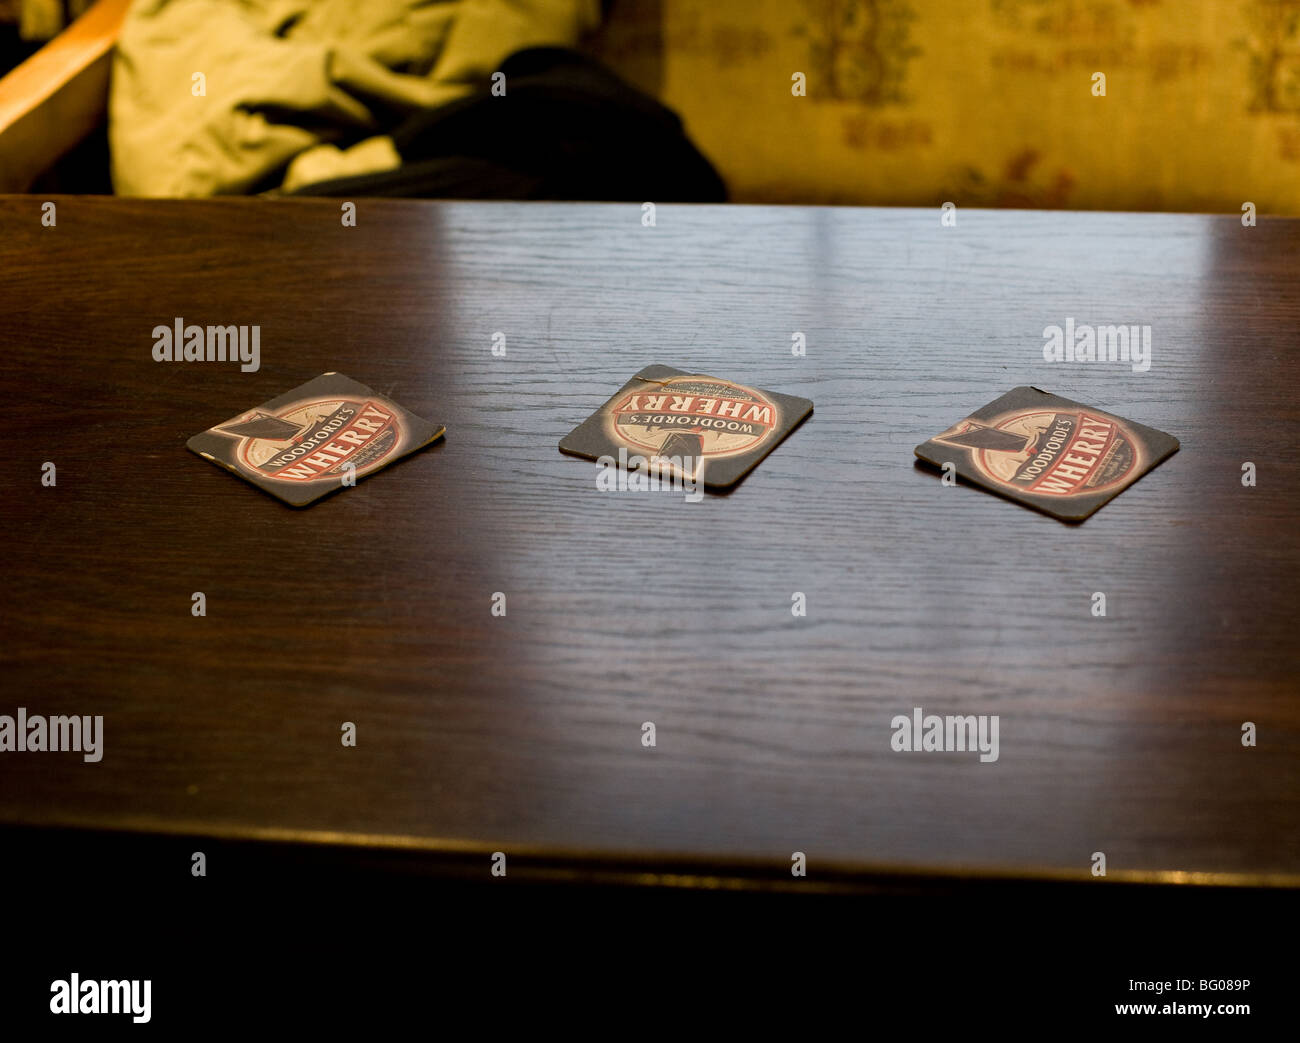 Three beer mats on a table in a pub in Essex. - Stock Image